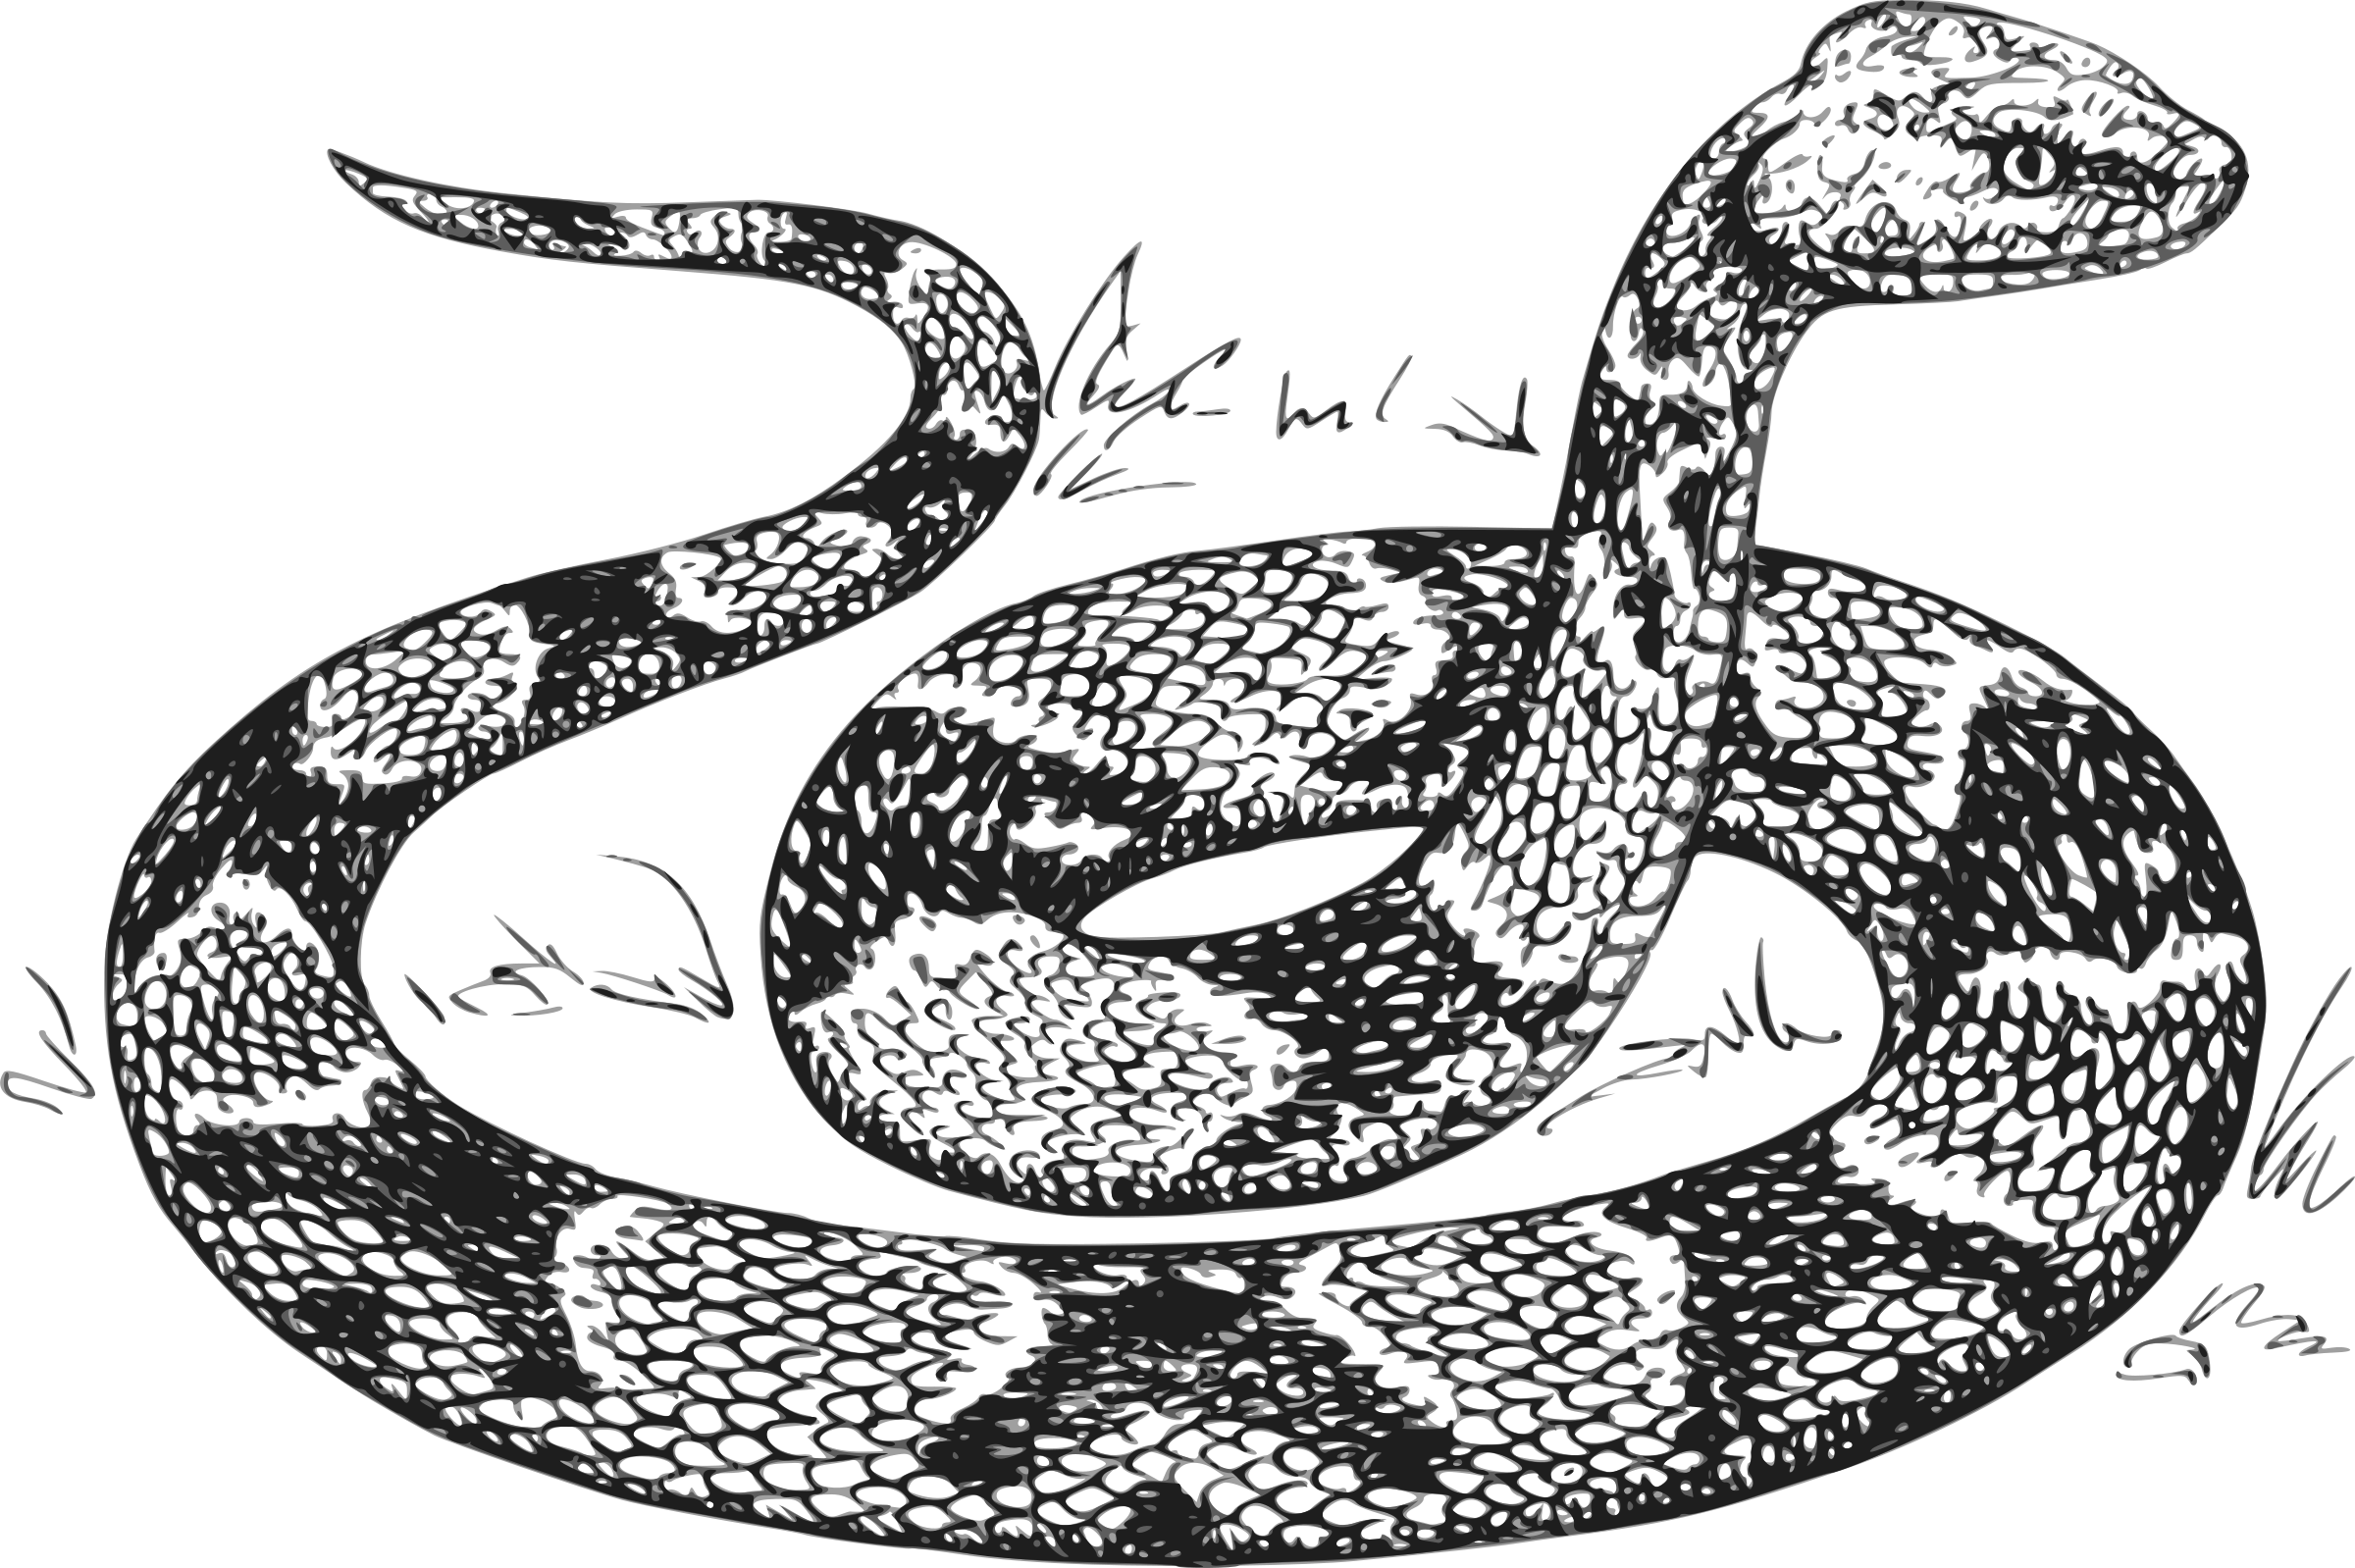 Snake clipart copperhead. Grayscale big image png